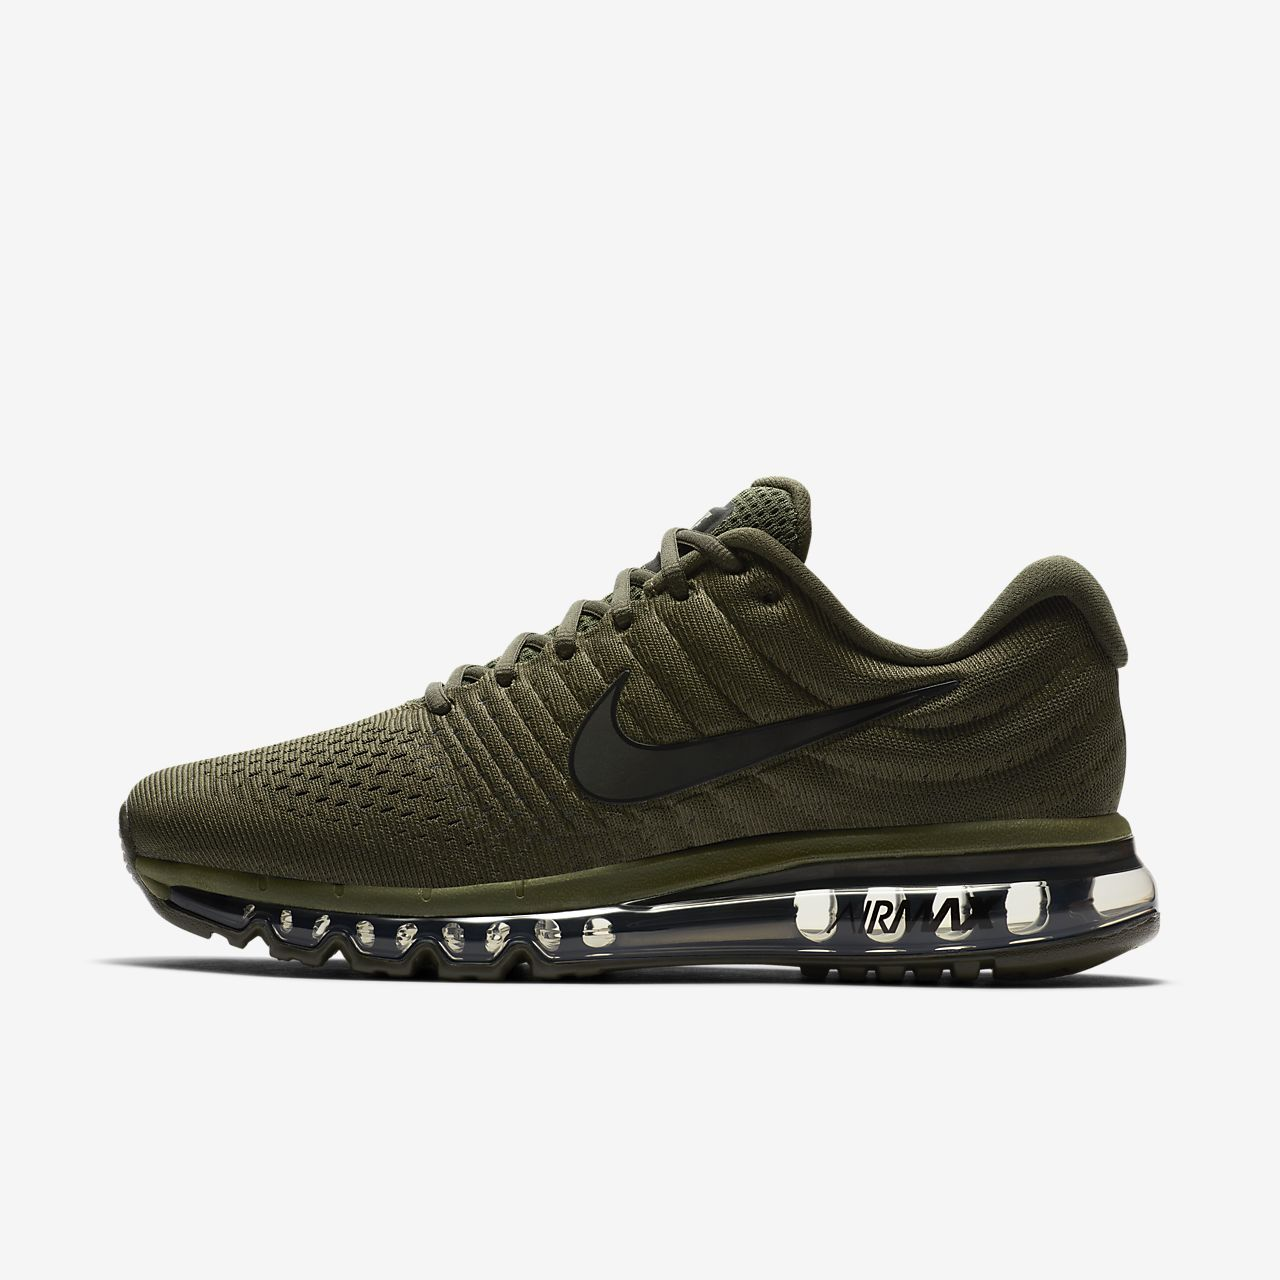 Pour Air Nike Se 2017 Max Ca Chaussure Homme TF4ASqgxw